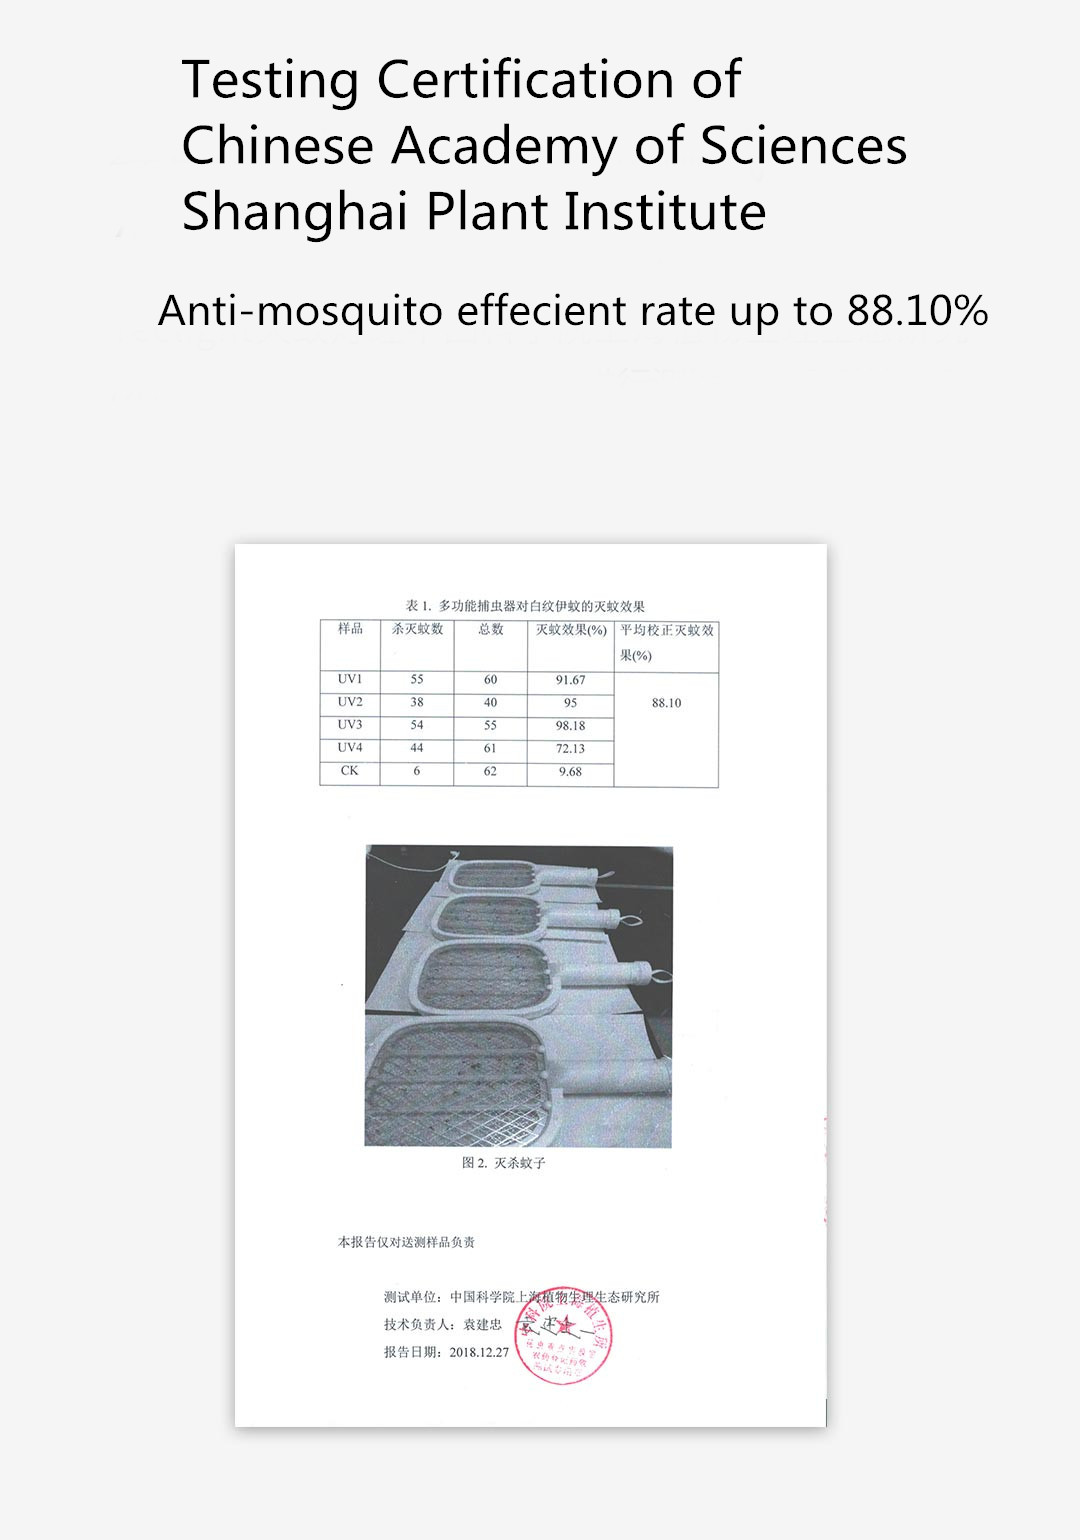 Yeelight Smart Light Sense Mosquito Swatter Zapper Mosquito Trap USB Insect Killer Lamp For Camping Indoor Office